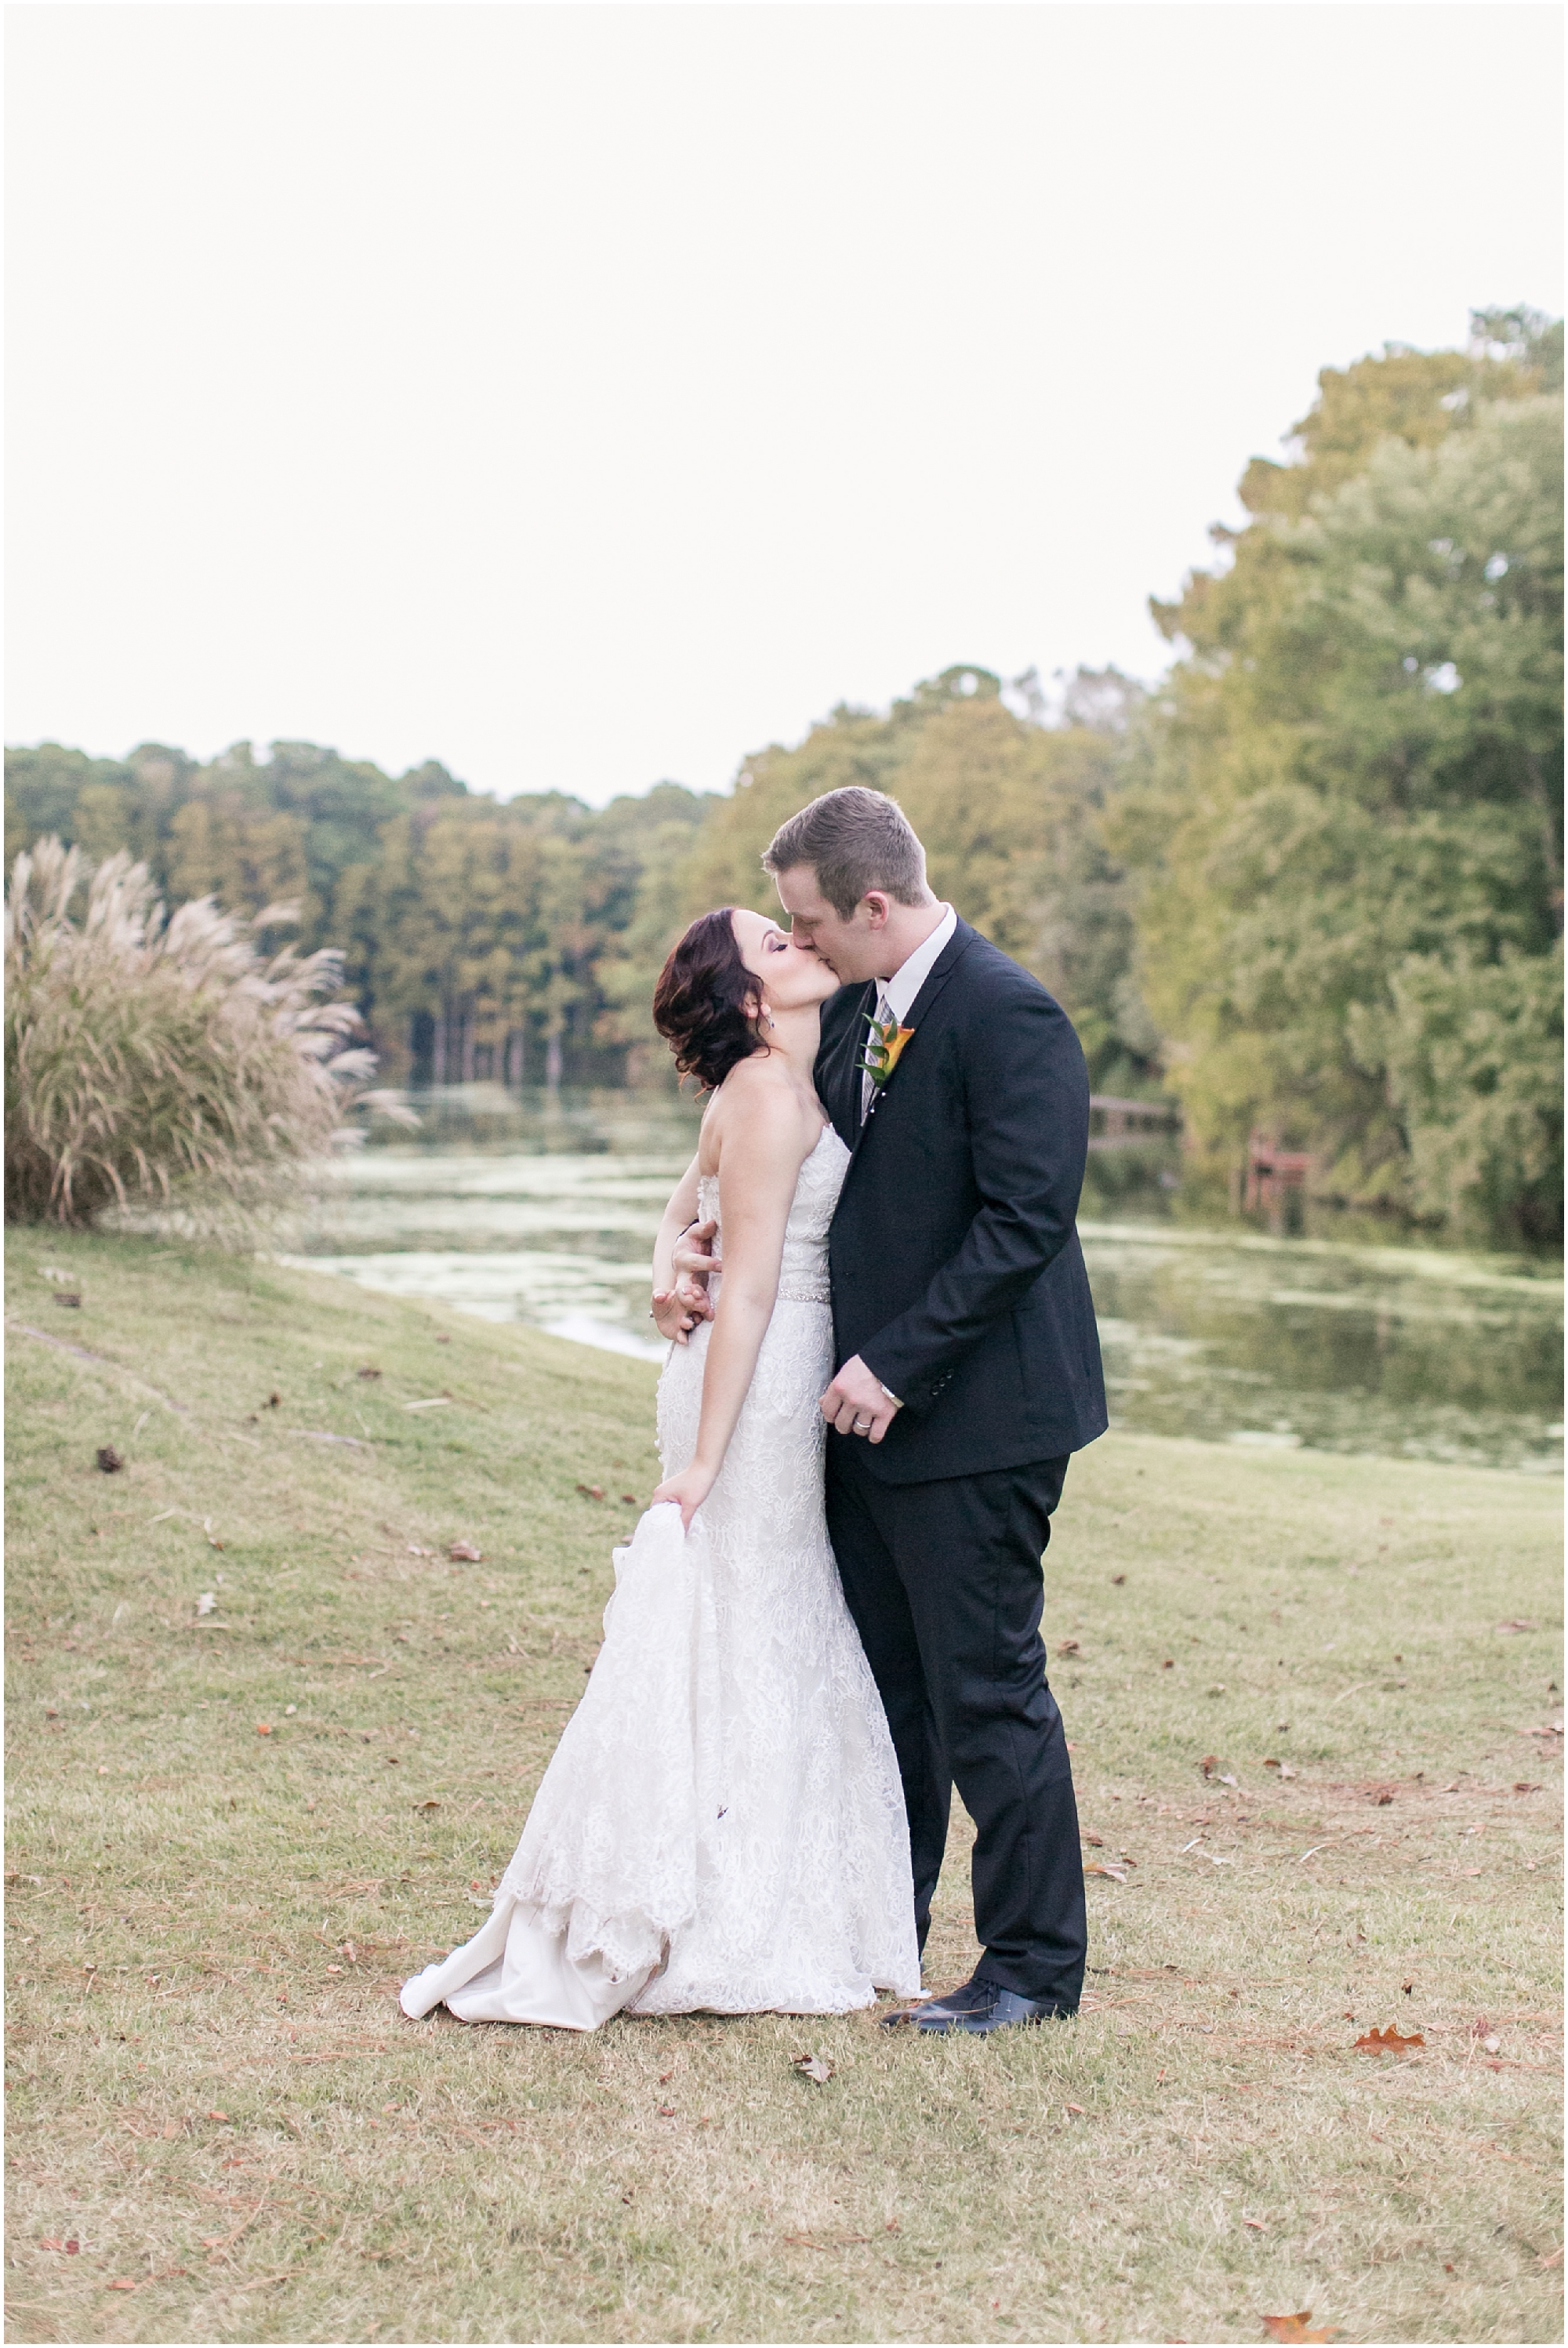 cypress point country club wedding virginia beach jessica ryan photography studio i do wedding dress , allure bridals, fluttering flowers, bride and groom canid portrait